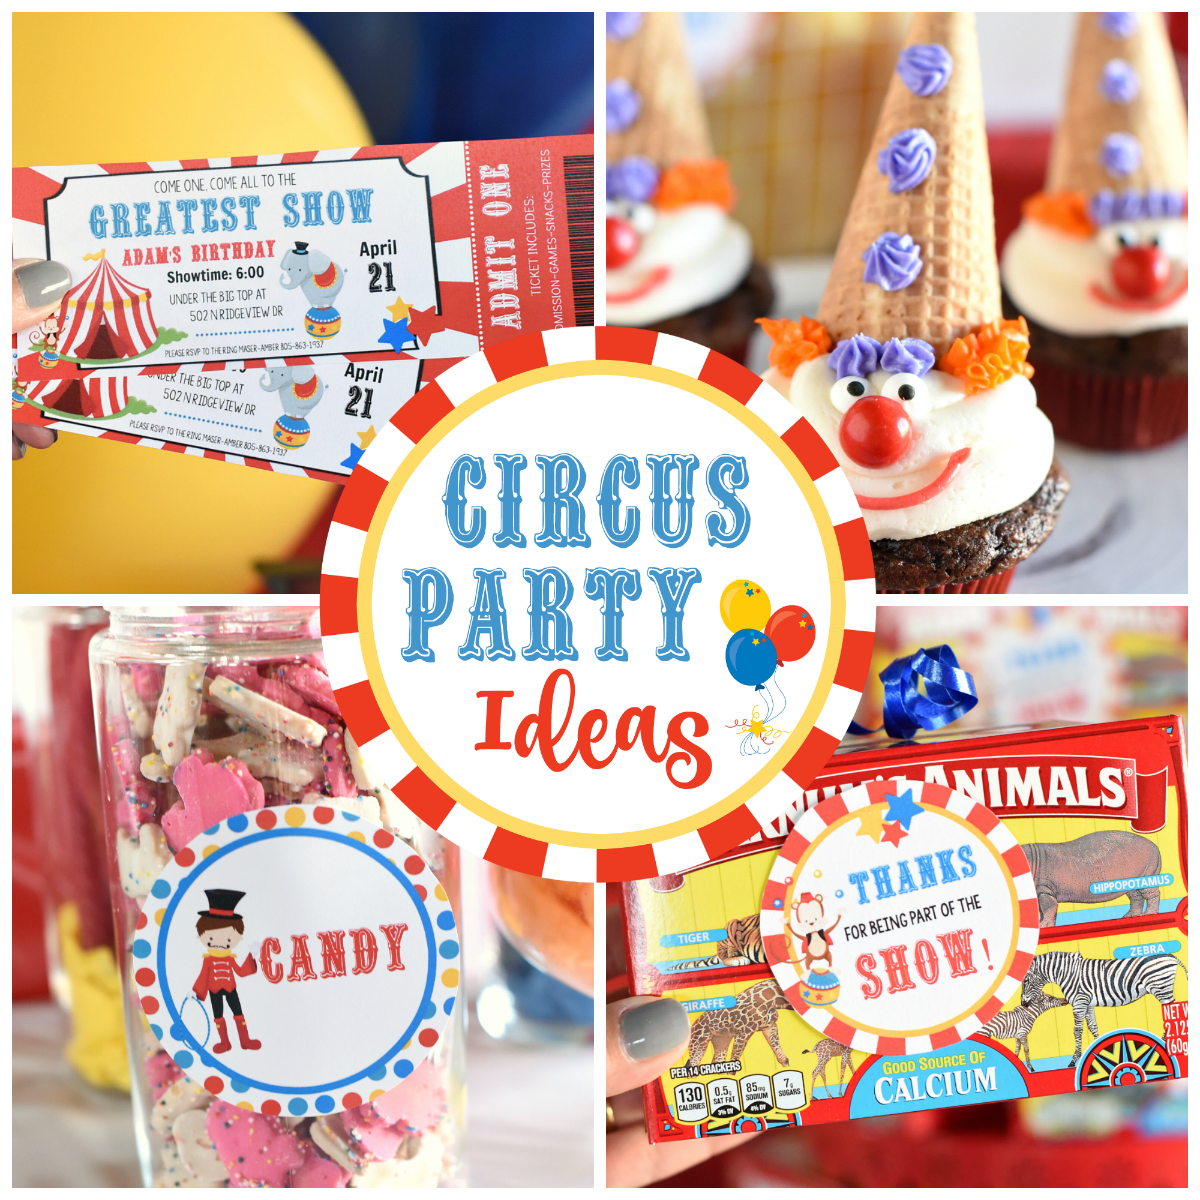 Circus Party Ideas for all ages-games, decorations, food and more fun ideas for your circus party